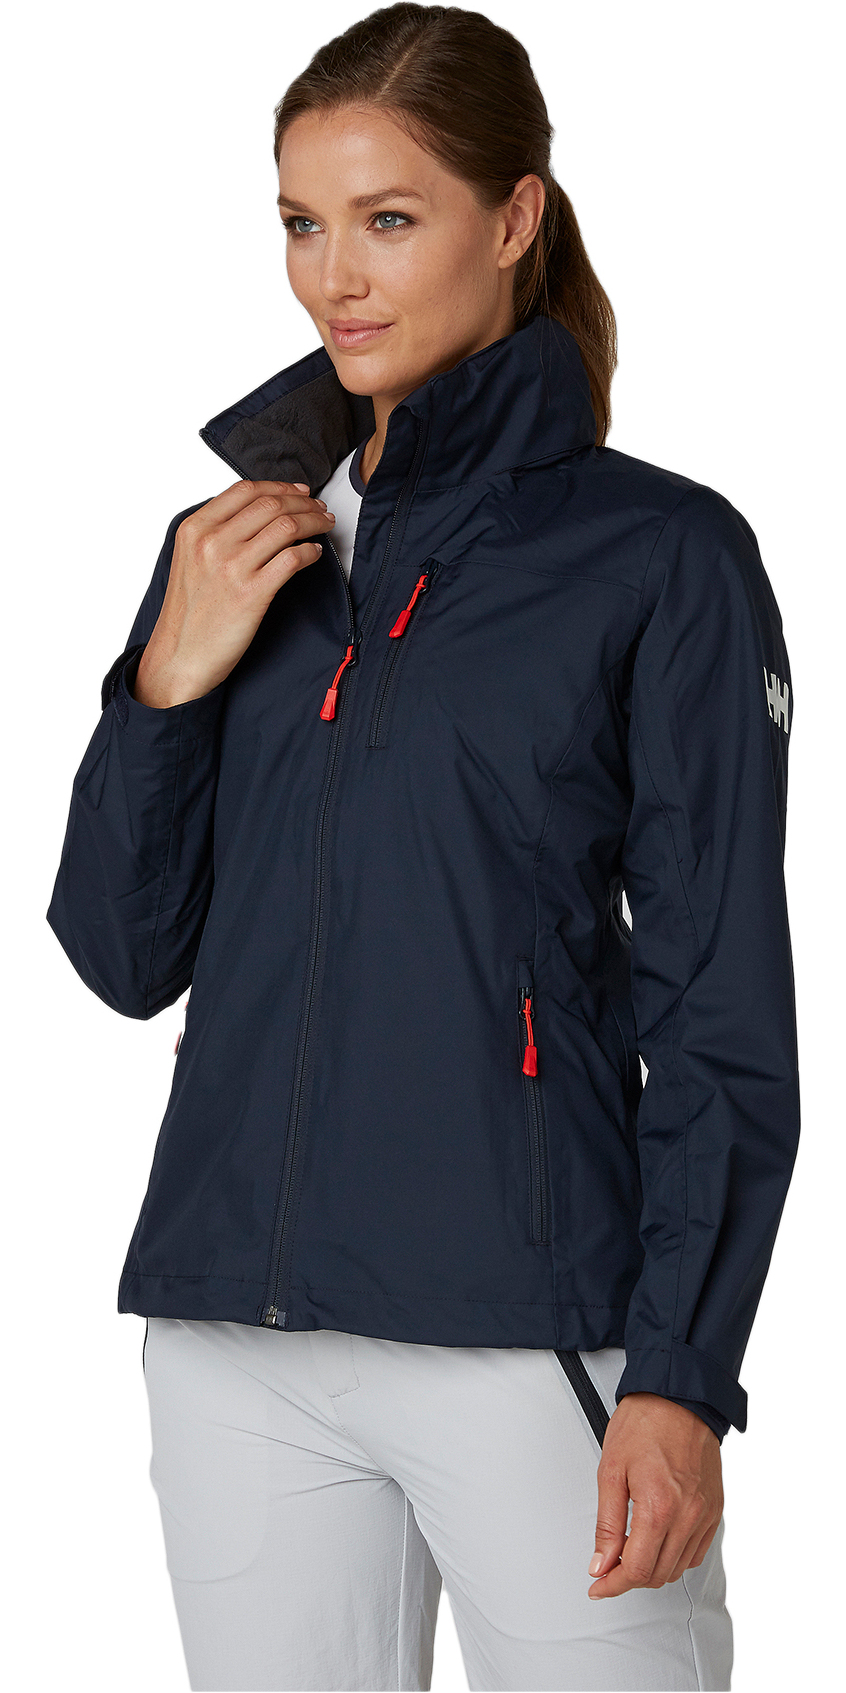 4cf9a822 2019 Helly Hansen Dame Hooded Crew Mid Layer Jacket Navy 33891 ...